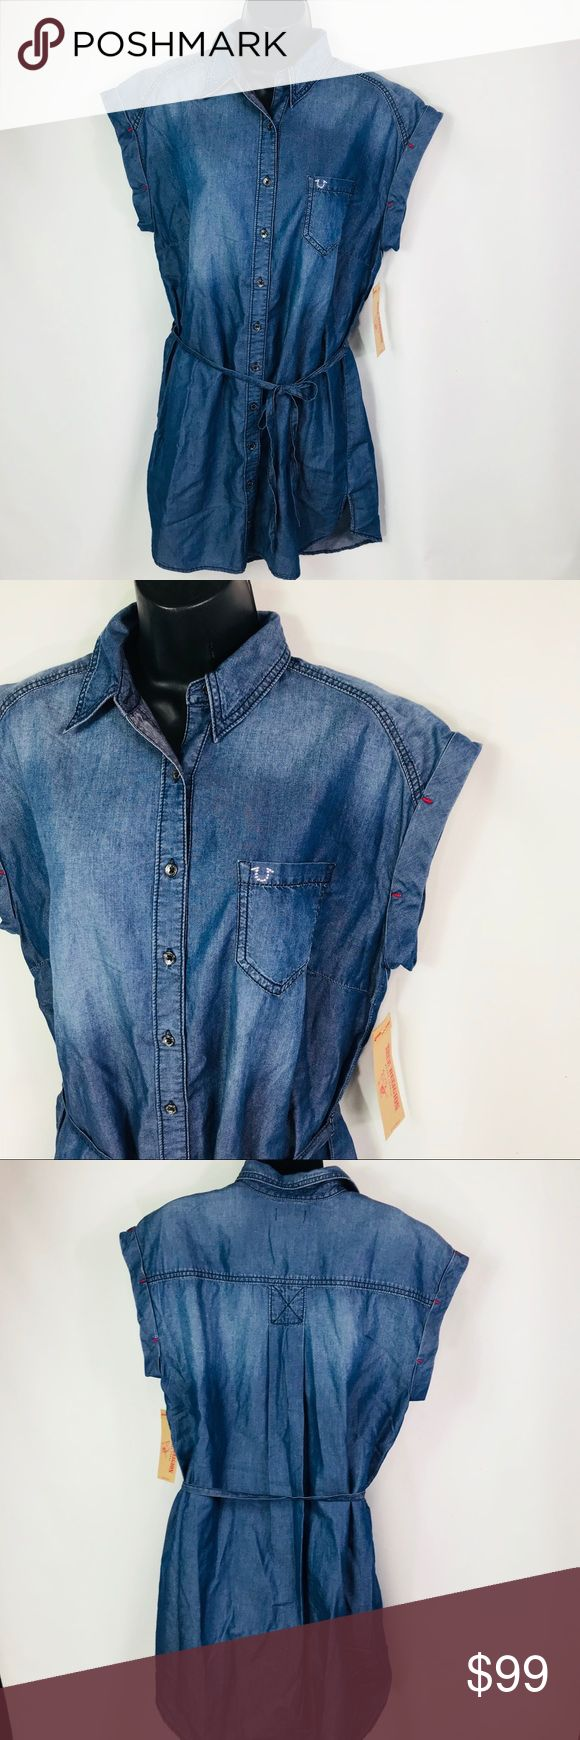 """True Religion Short Sleeve Denim Shirt Dress Sz L Katie Shirt Dress Sz L Tied in the front with the logo on the front pocket 61% cotton / 39% lyocell Pit to Pit - 20"""" Length - 35"""" True Religion Dresses"""